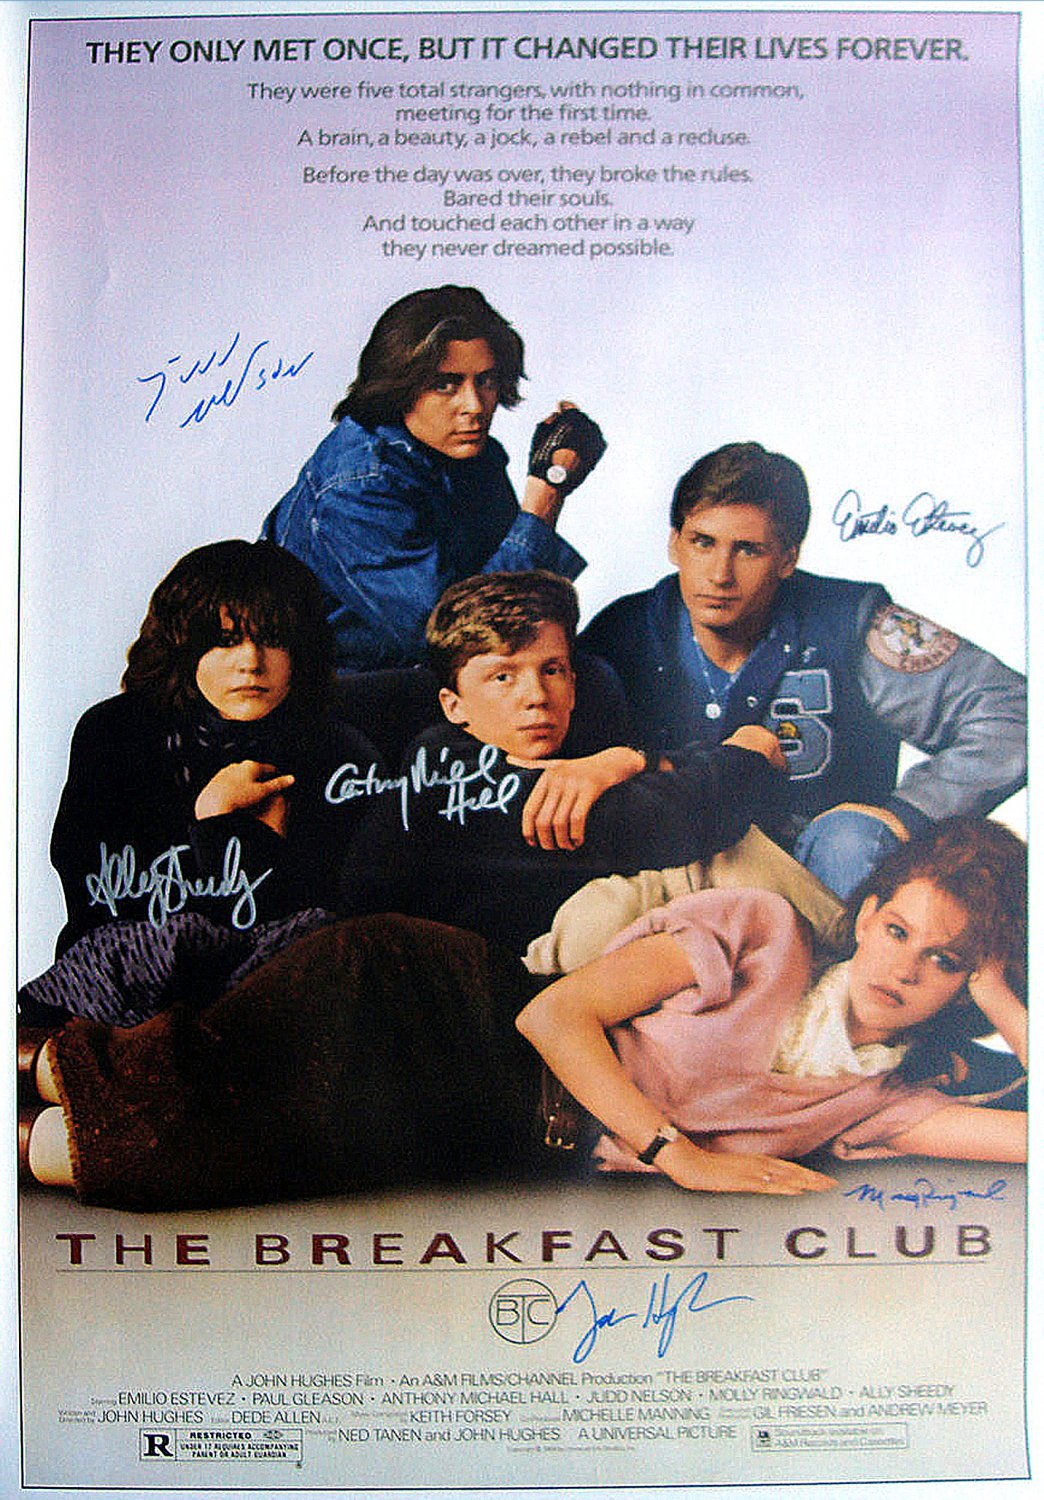 Signed THE BREAKFAST CLUB Movie Poster by 6 members of the Cast